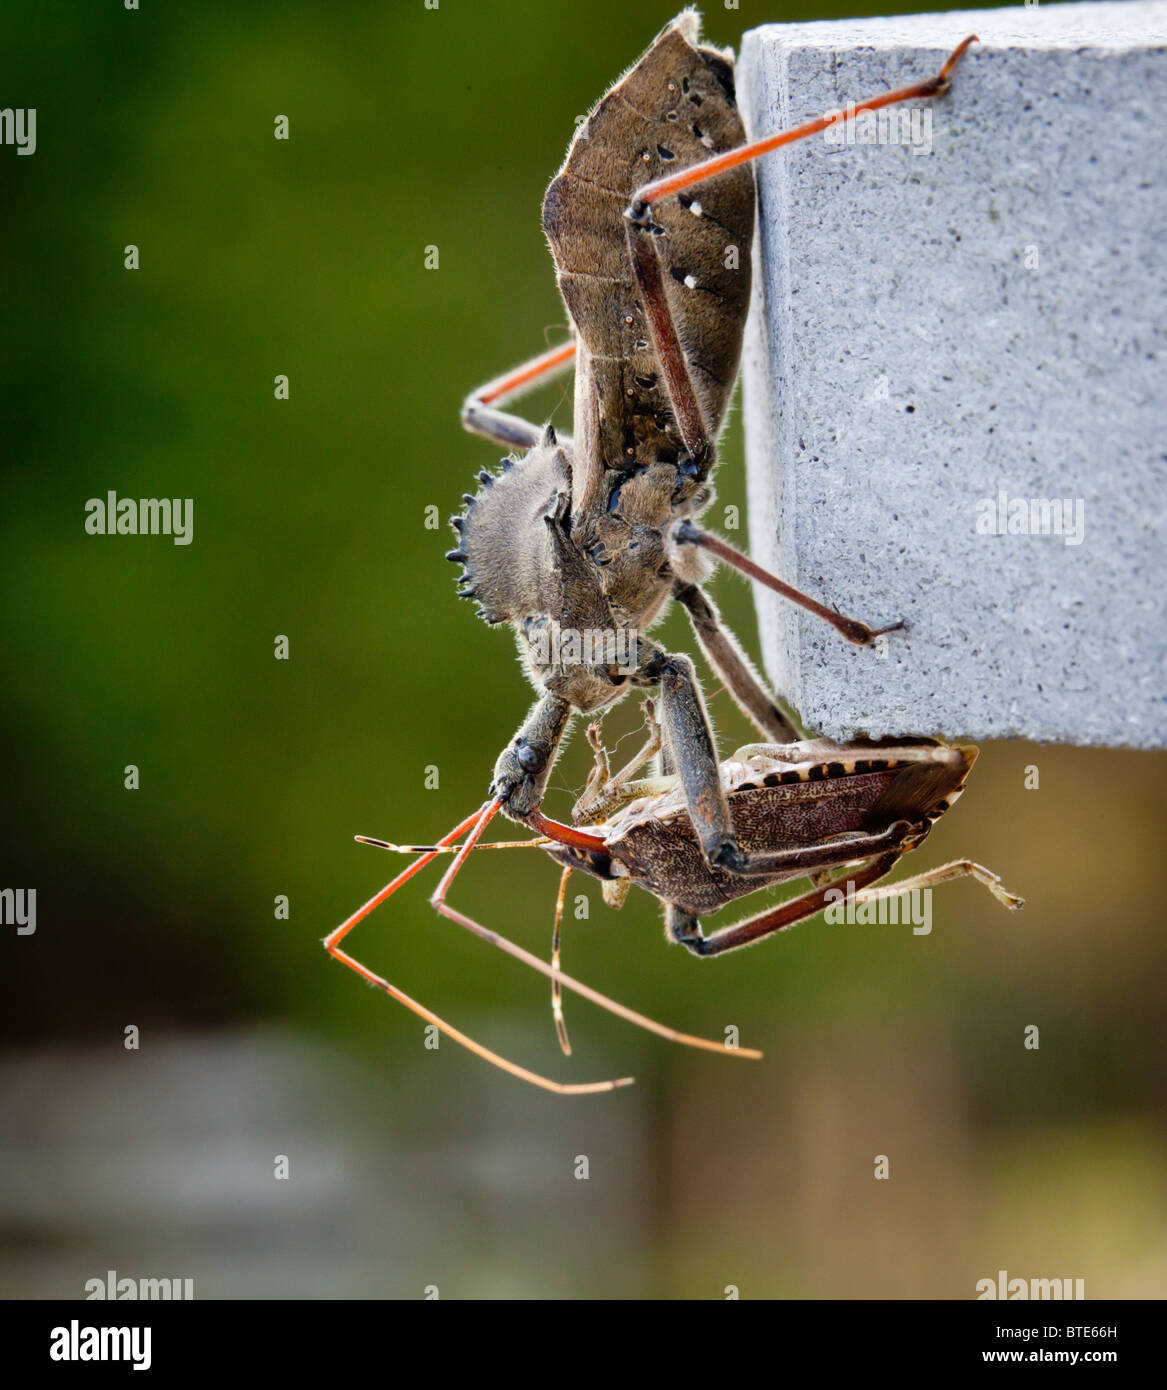 Rare shot of the predatory Assassin bug injecting venom into the body of a Stink or Shield bug Stock Photo